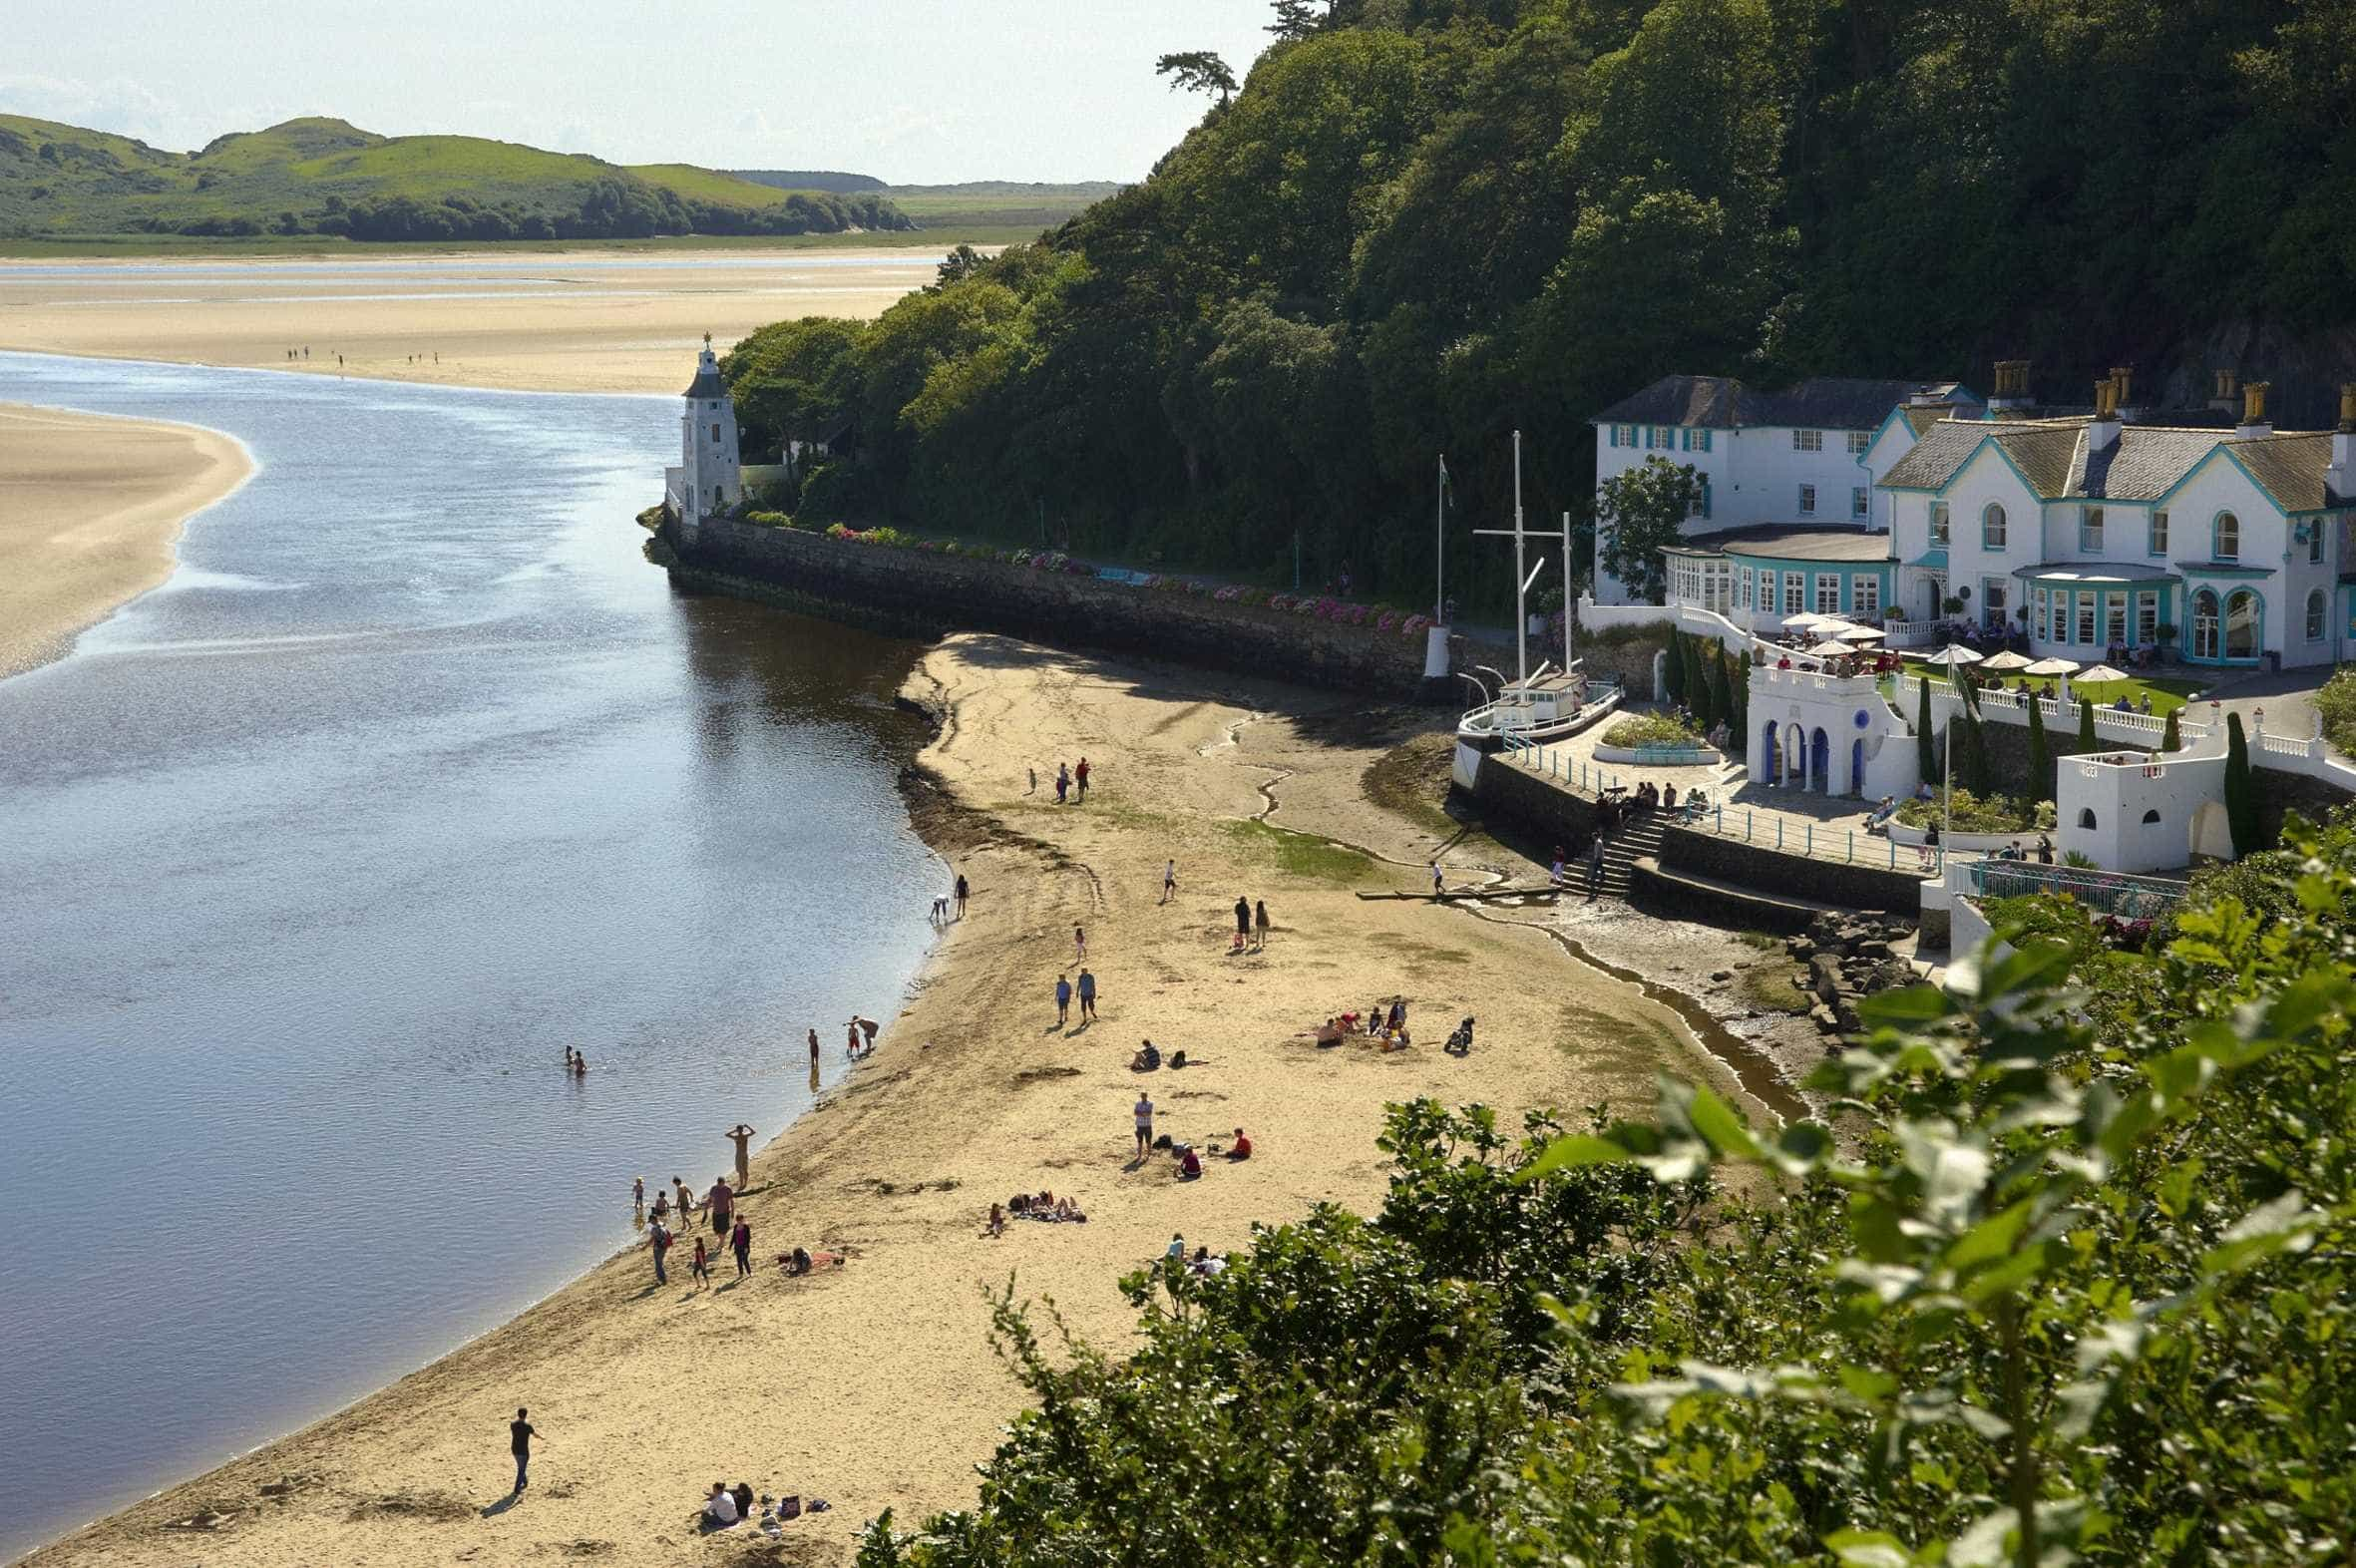 smal crowd of beachgoers at Portmeirion Beach on the Meirionnydd Coast